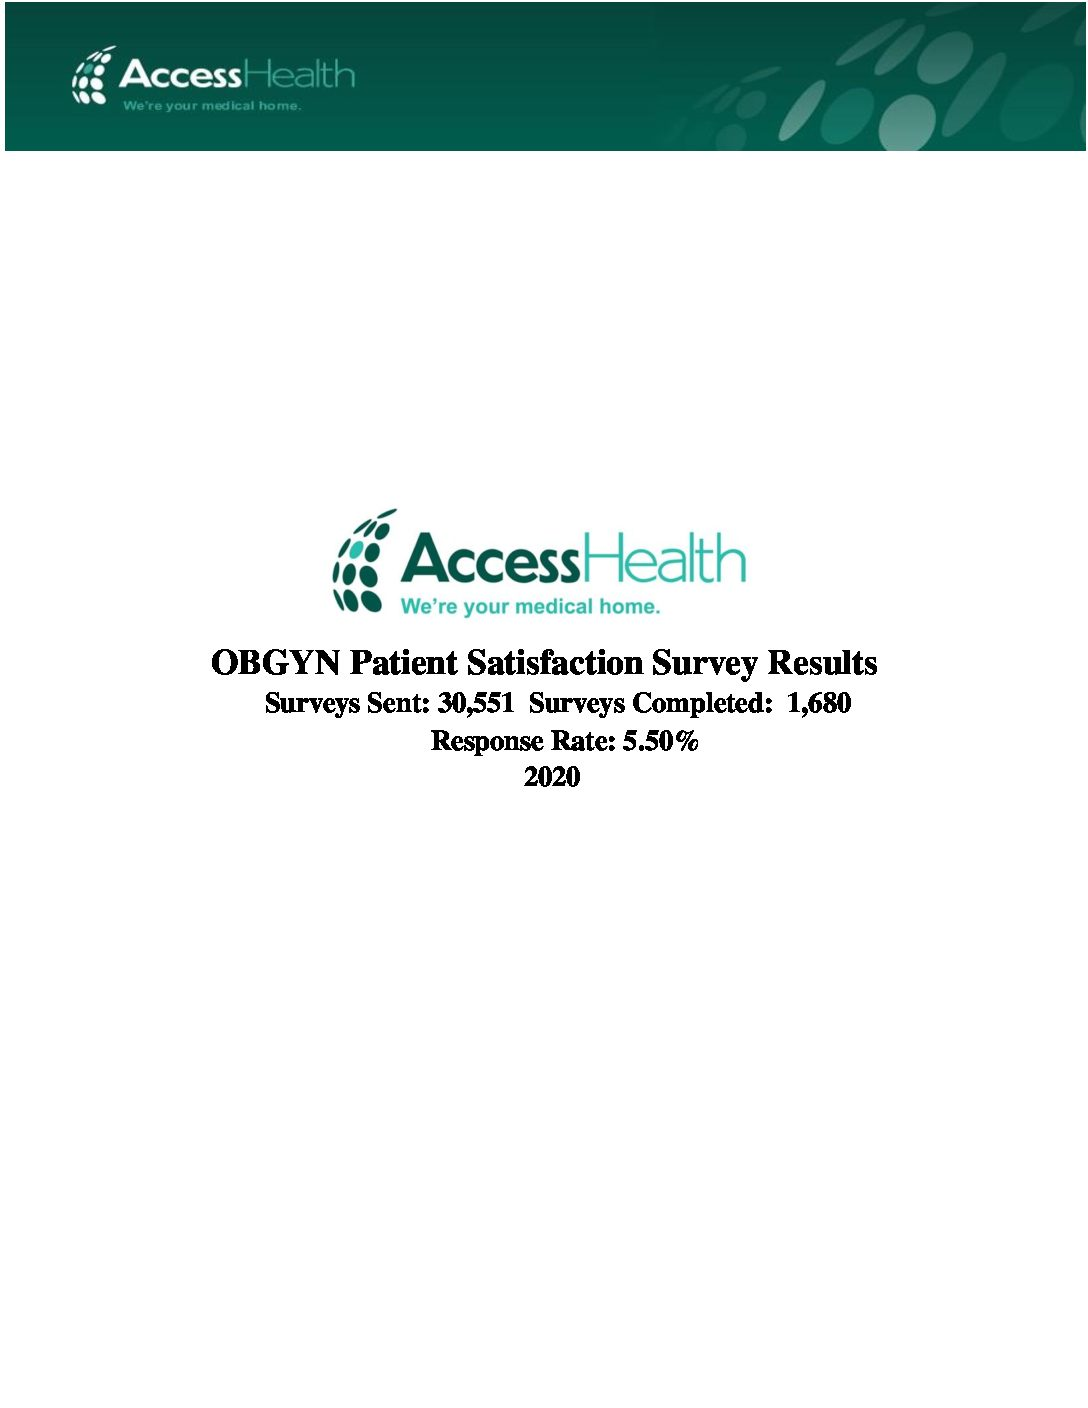 2020 OBGYN Patient Satisfaction Survey Results